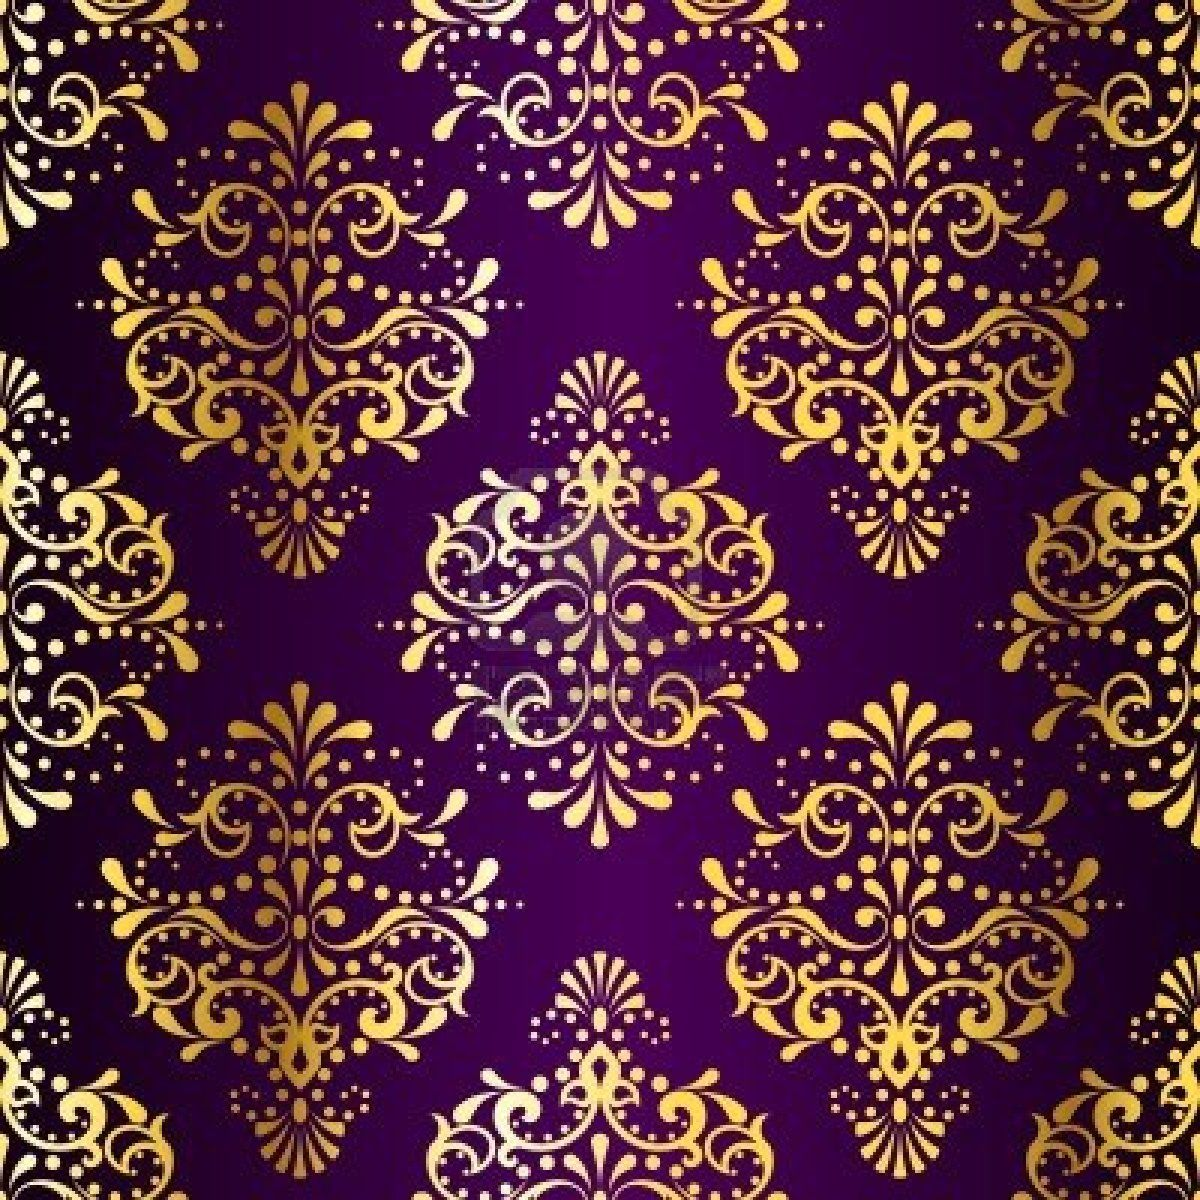 Indian wallpaper pattern gold images for Gold wallpaper designs